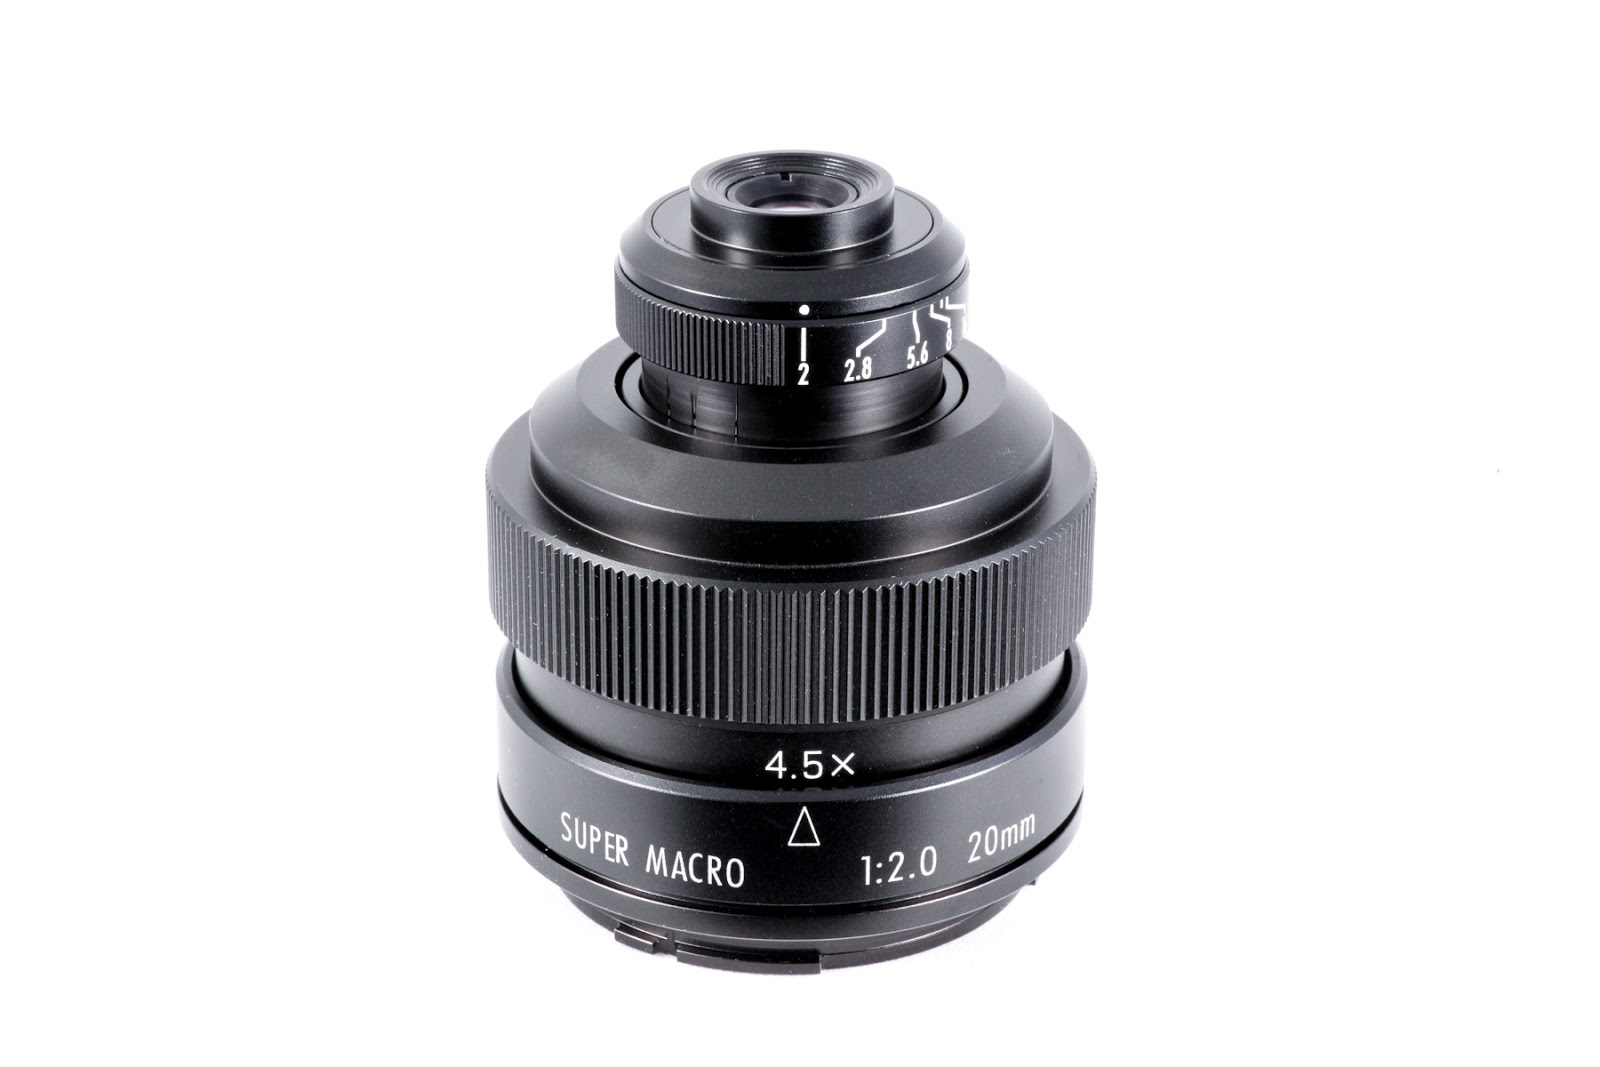 ZY Optics Mitakon 20mm f/2